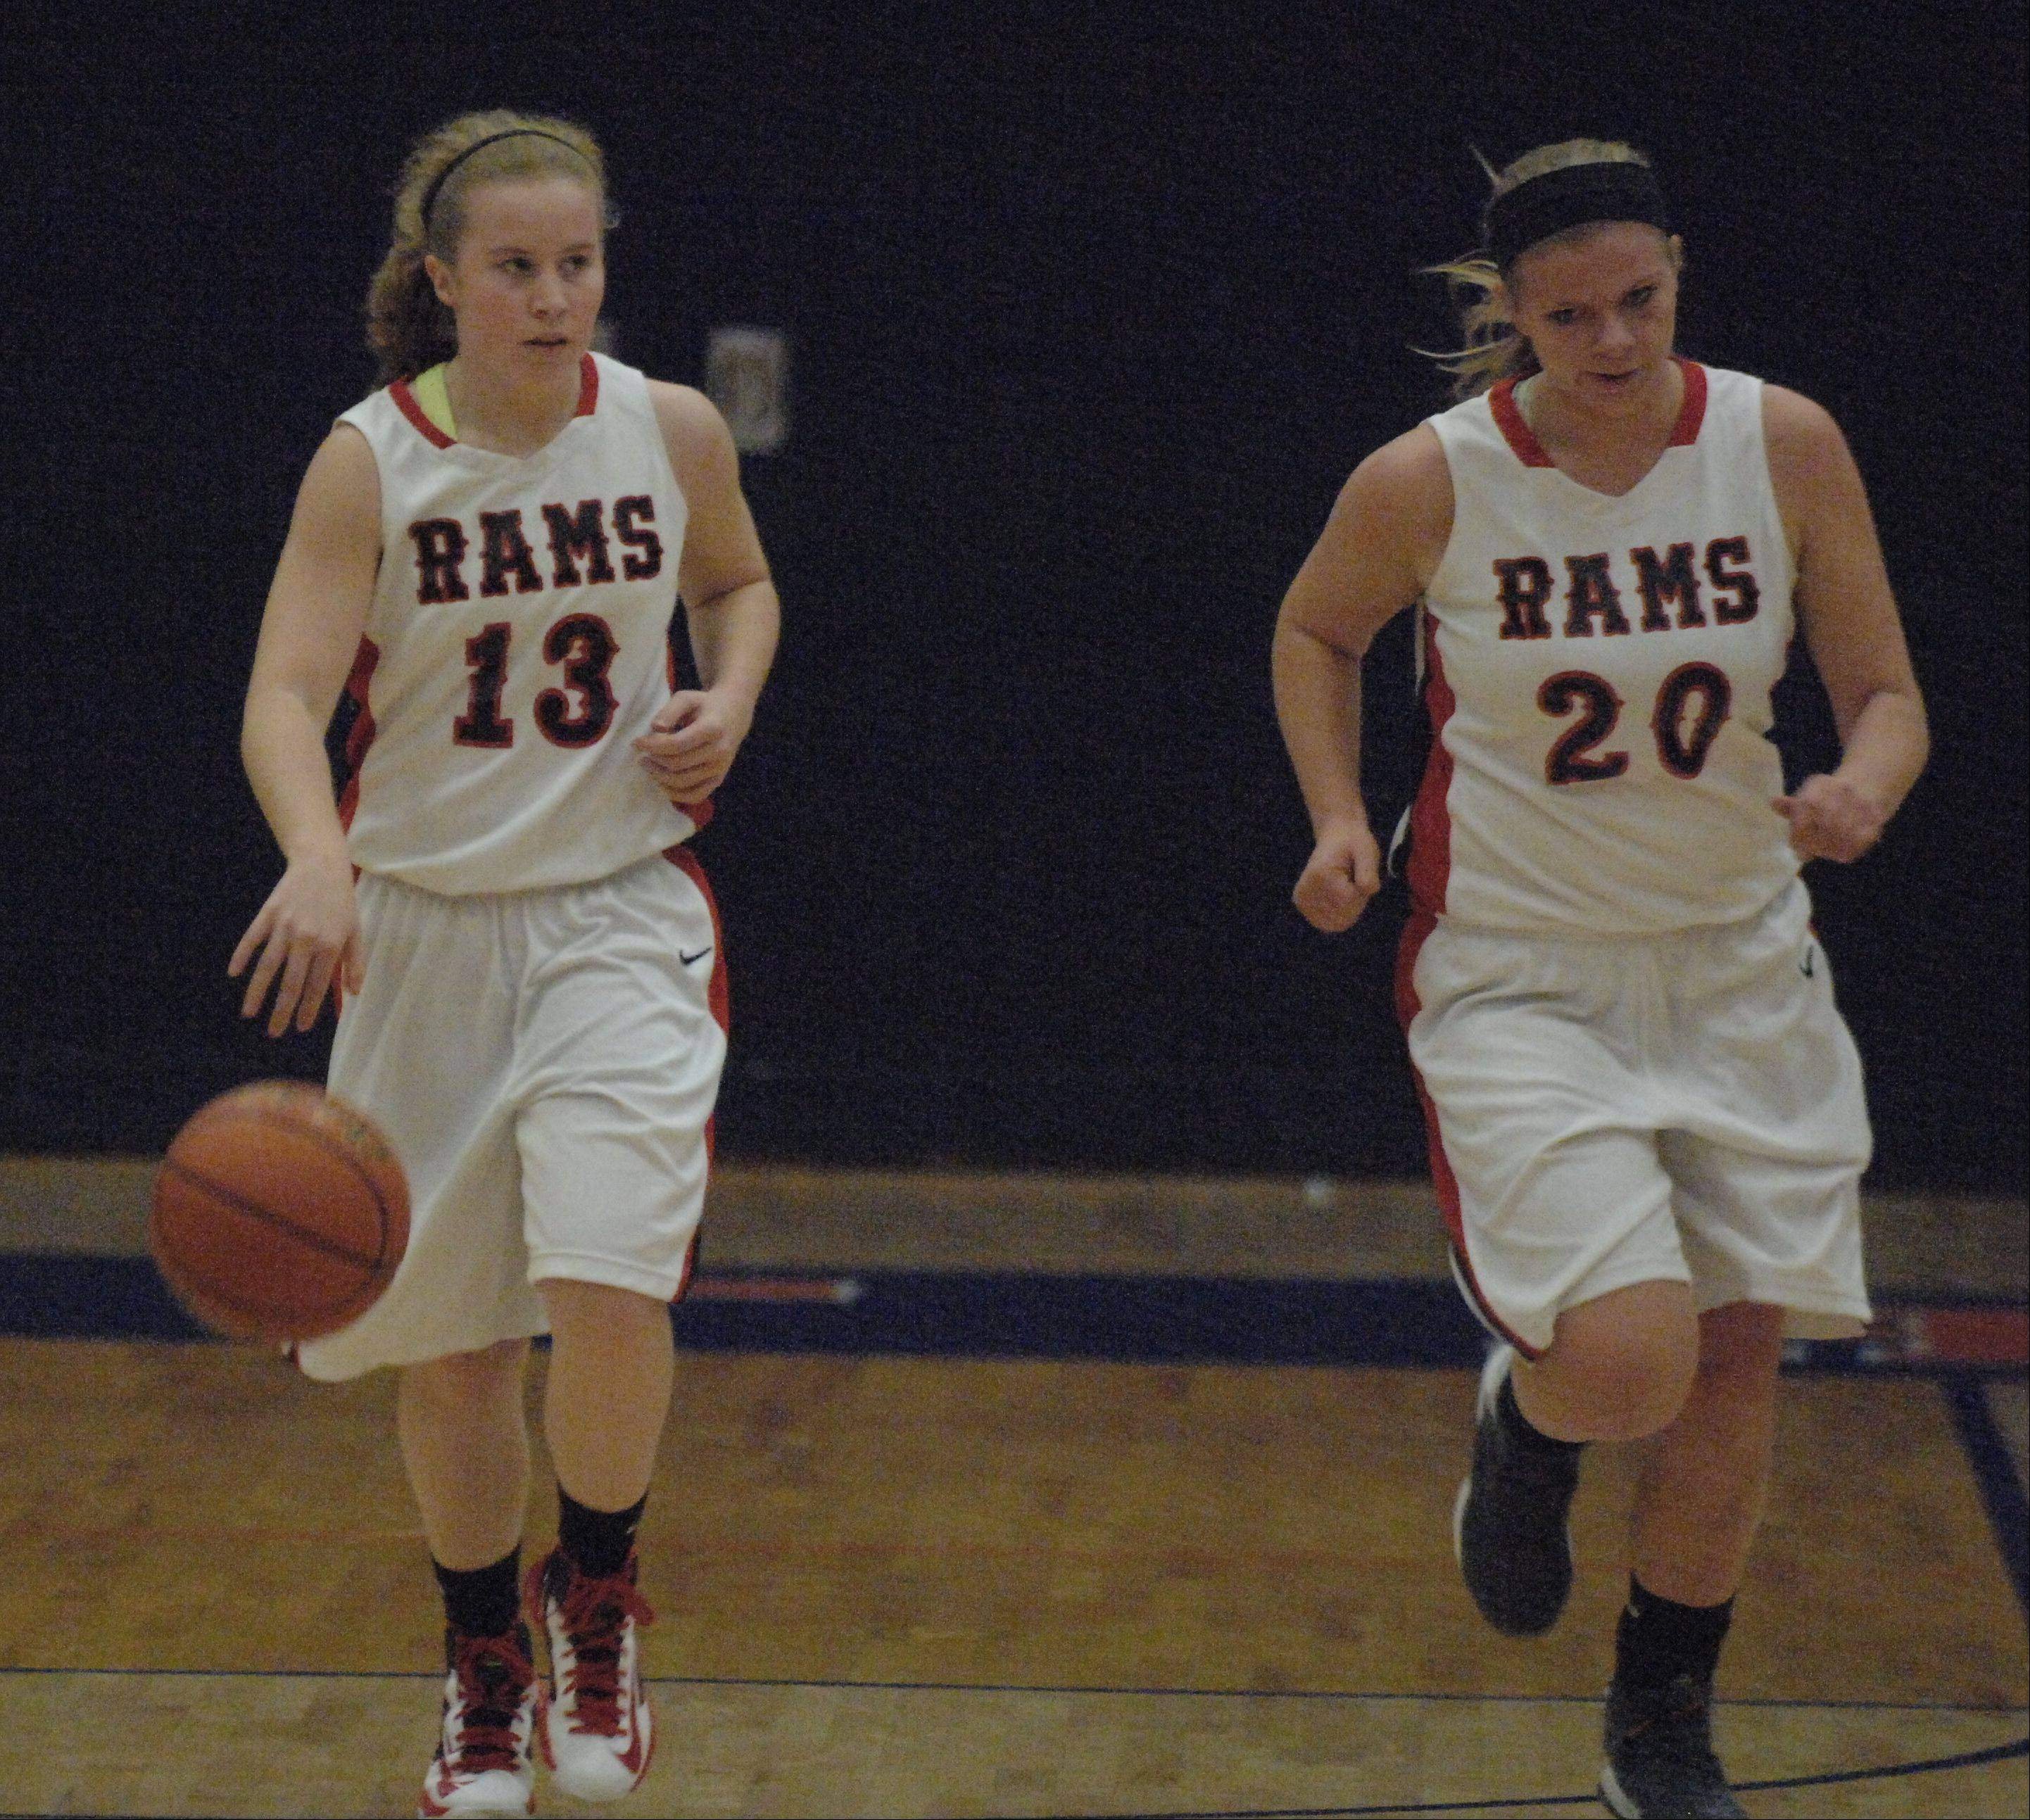 Images from the Batavia vs. Glenbard East girls basketball game Saturday, December 8, 2012.